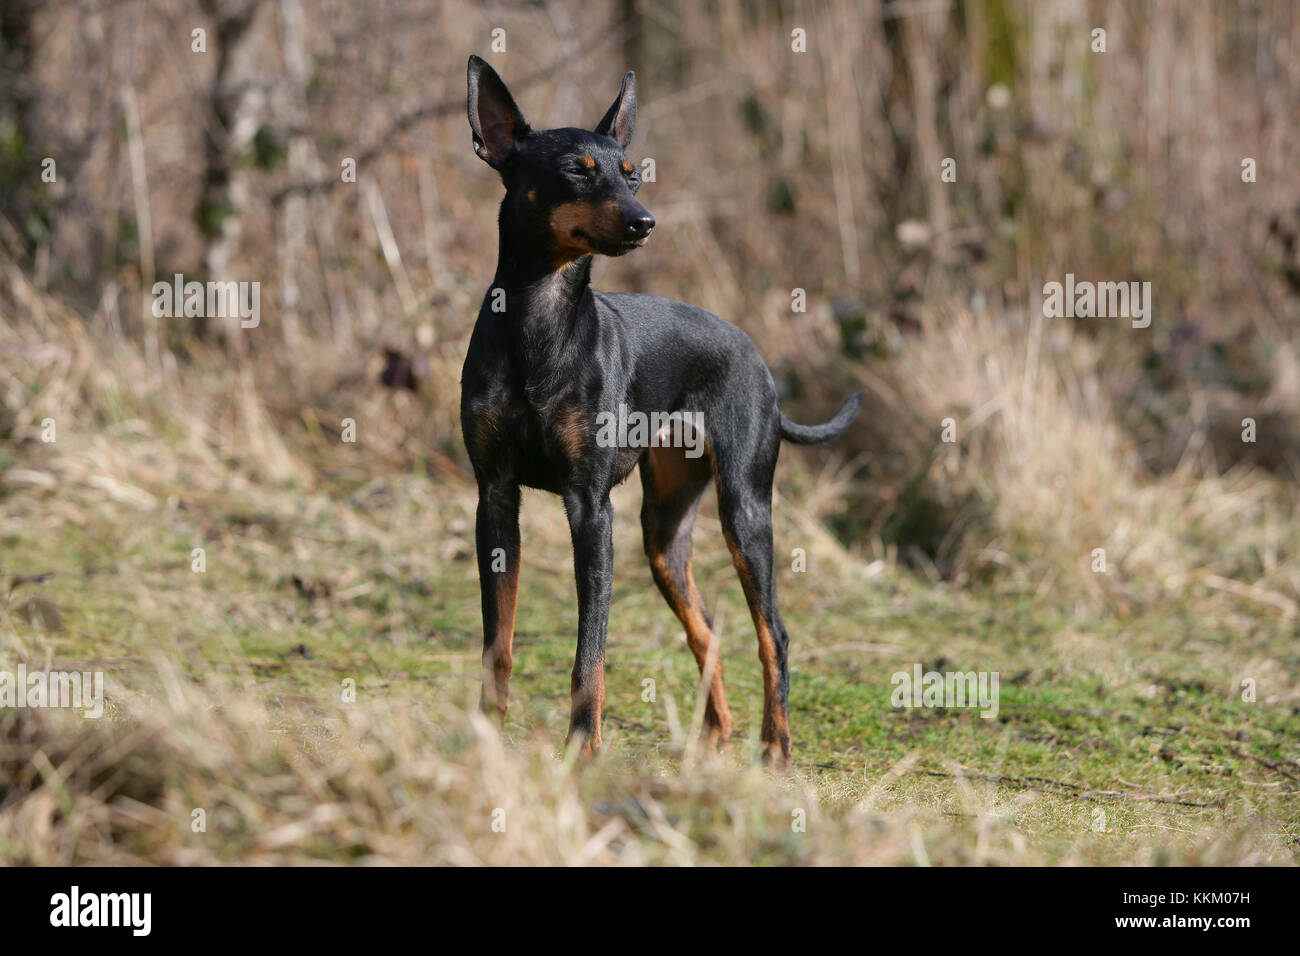 e15cd893e5cd84 Terrier - English Toy English Toy Terrier Black-and-tan Toy Terrier - Stock